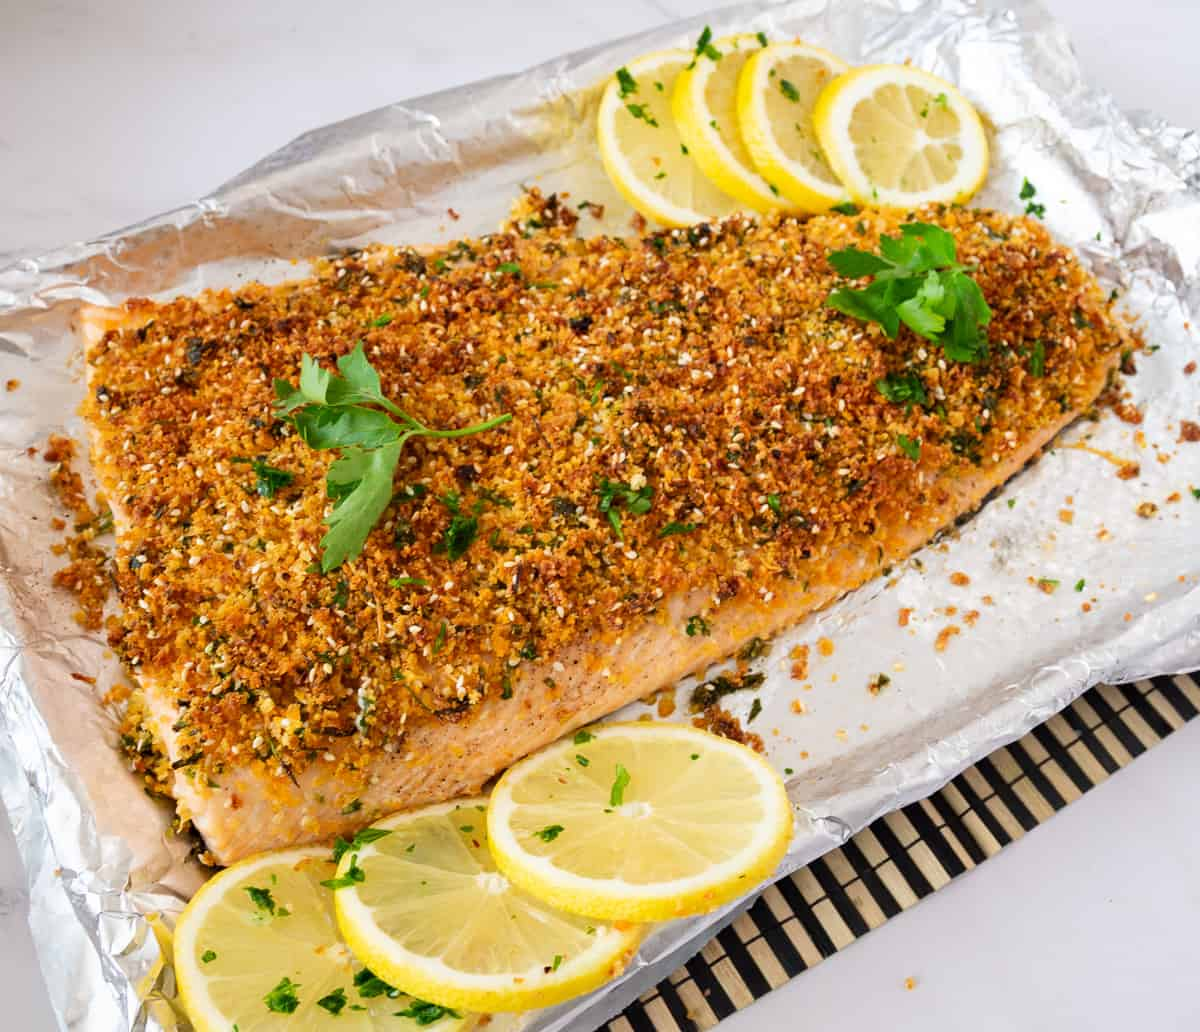 Baking tray with breadcrumb crusted salmon.